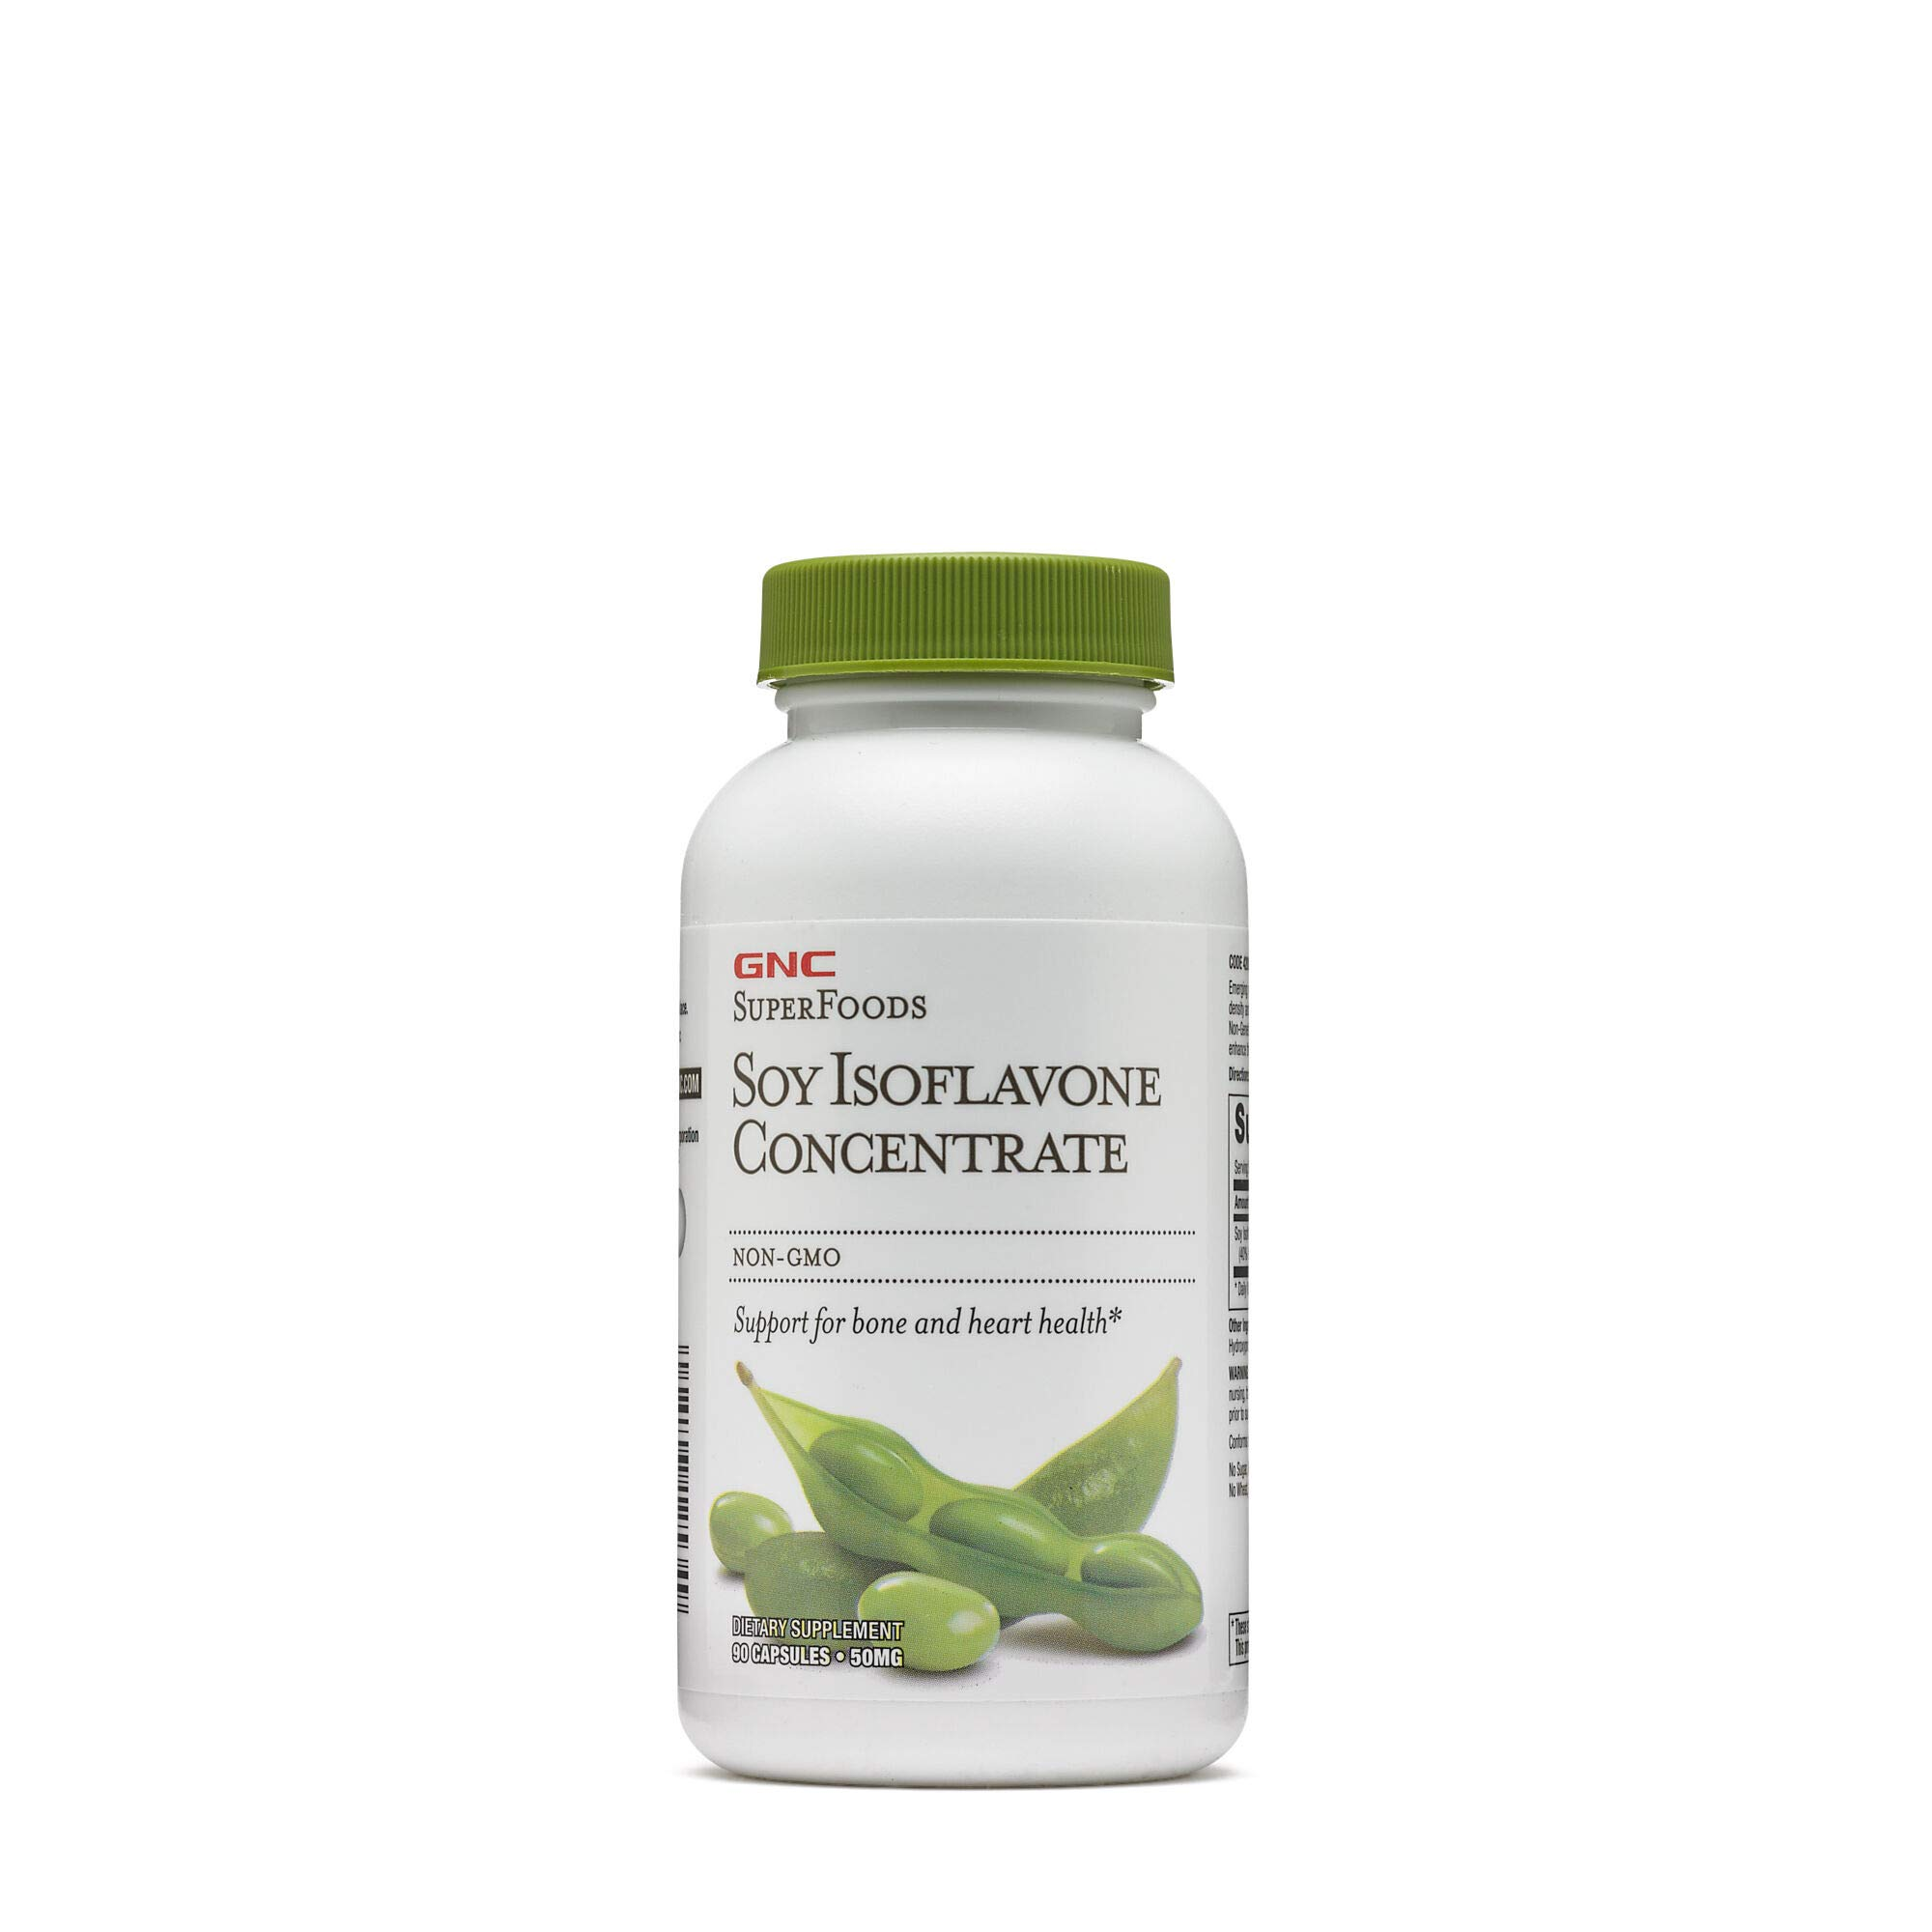 GNC SuperFoods Isoflavone Concentrate caps